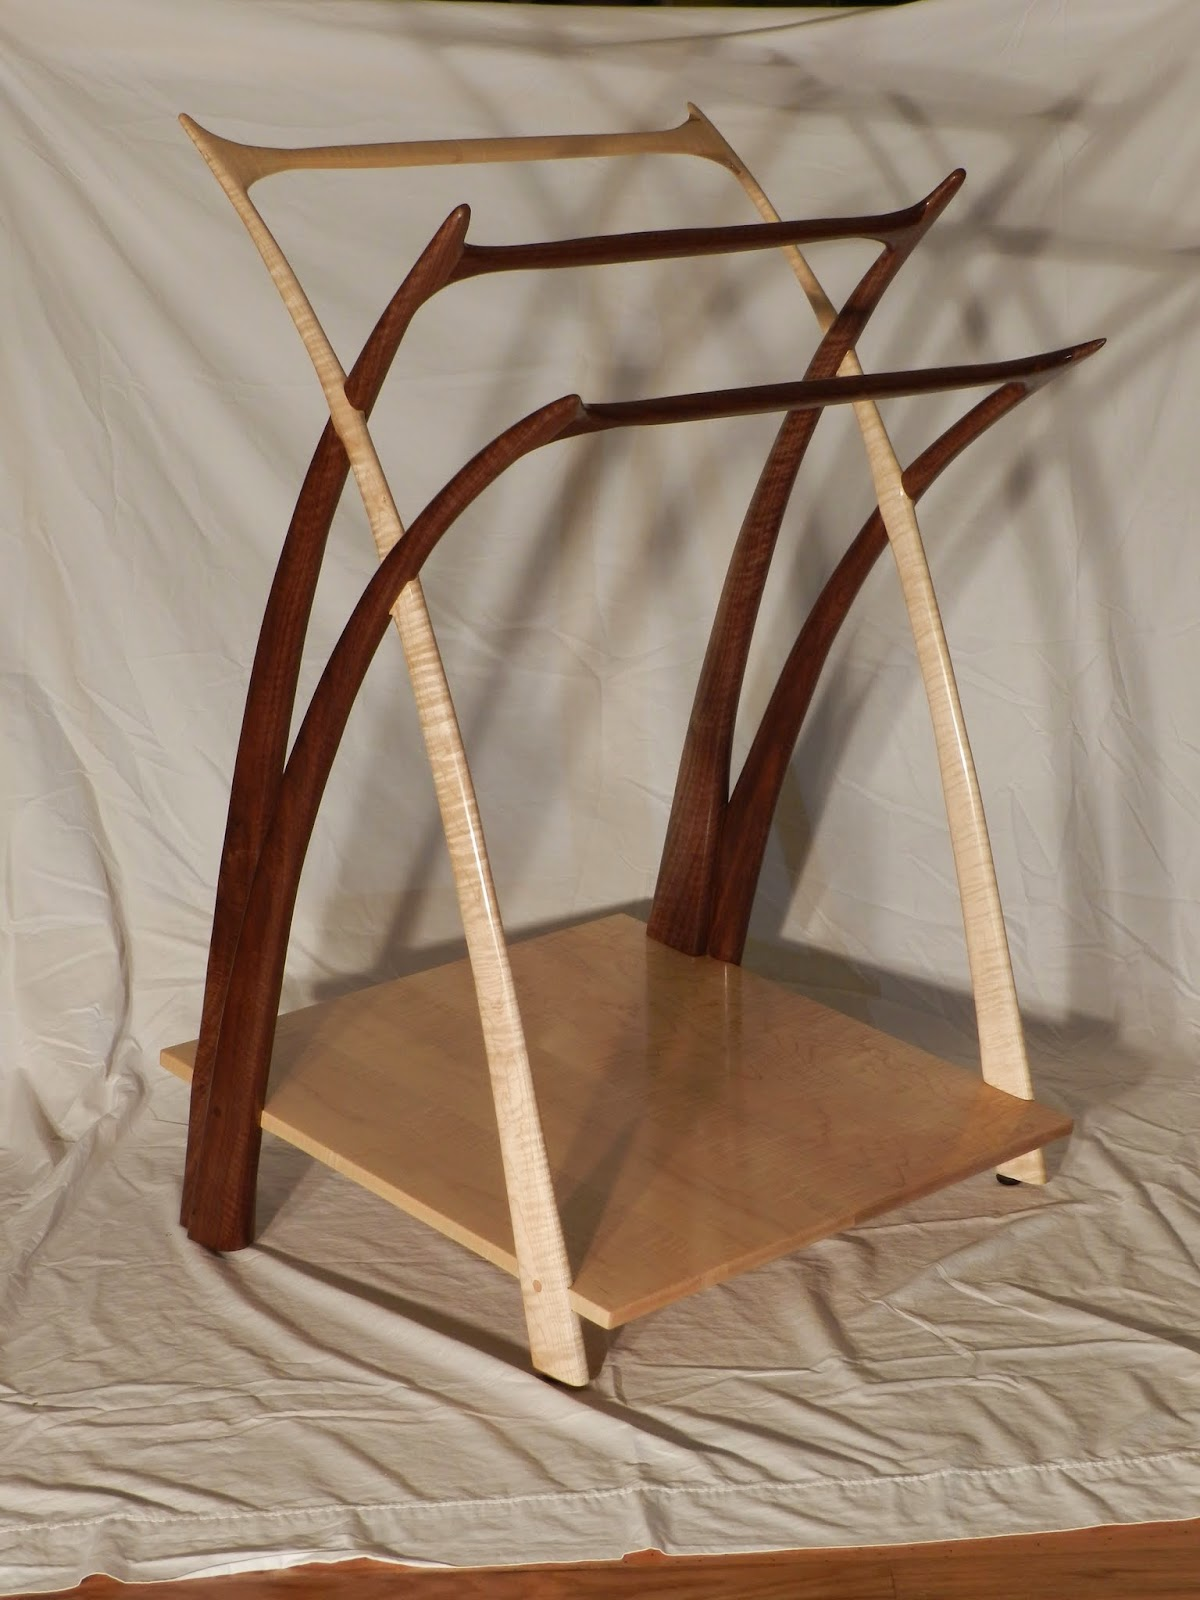 The Penultimate Woodshop: Lill's Quilt Rack: Part XII